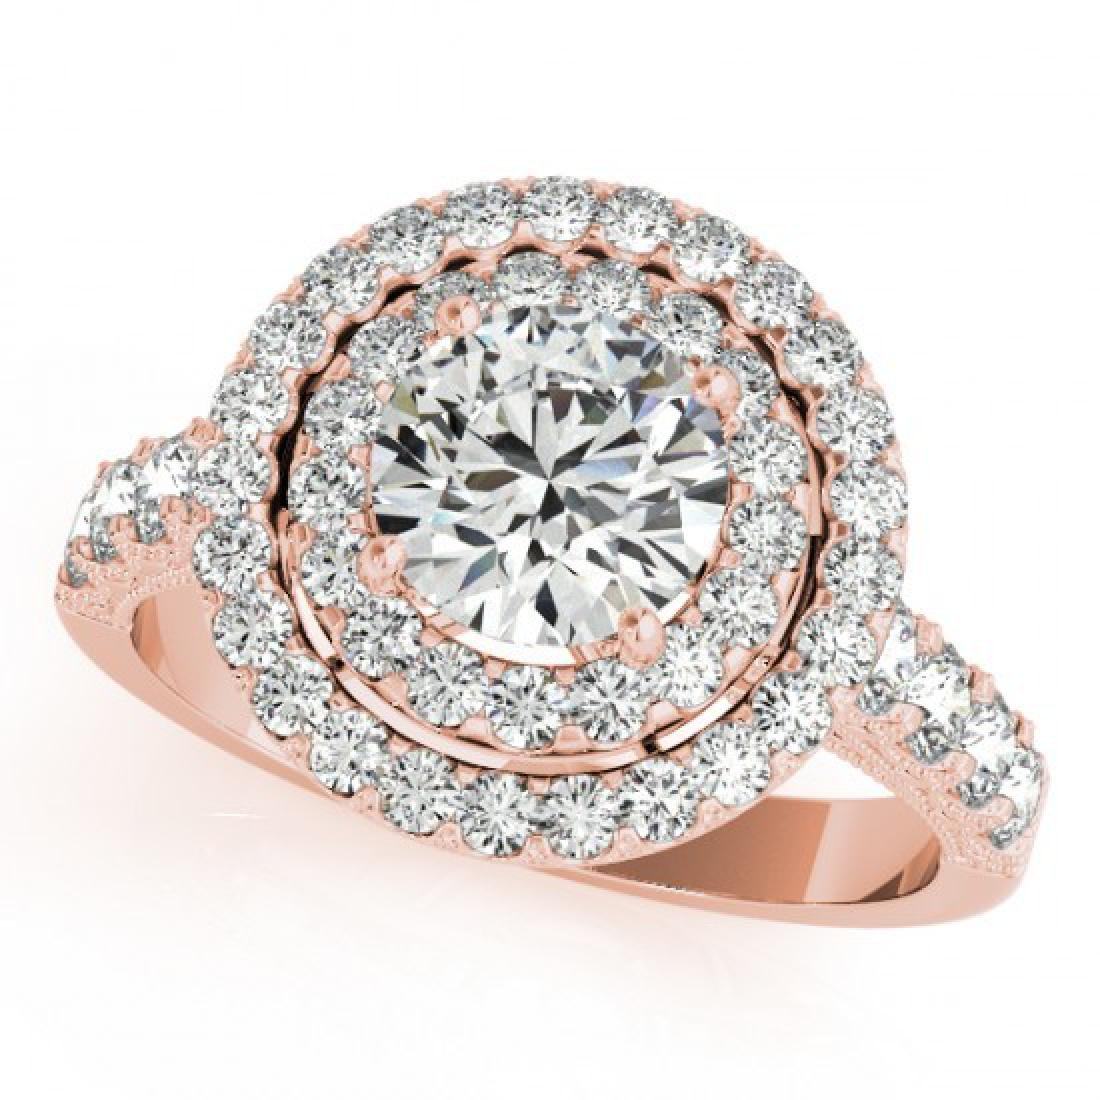 3 CTW Certified VS/SI Diamond Solitaire Halo Ring 14K